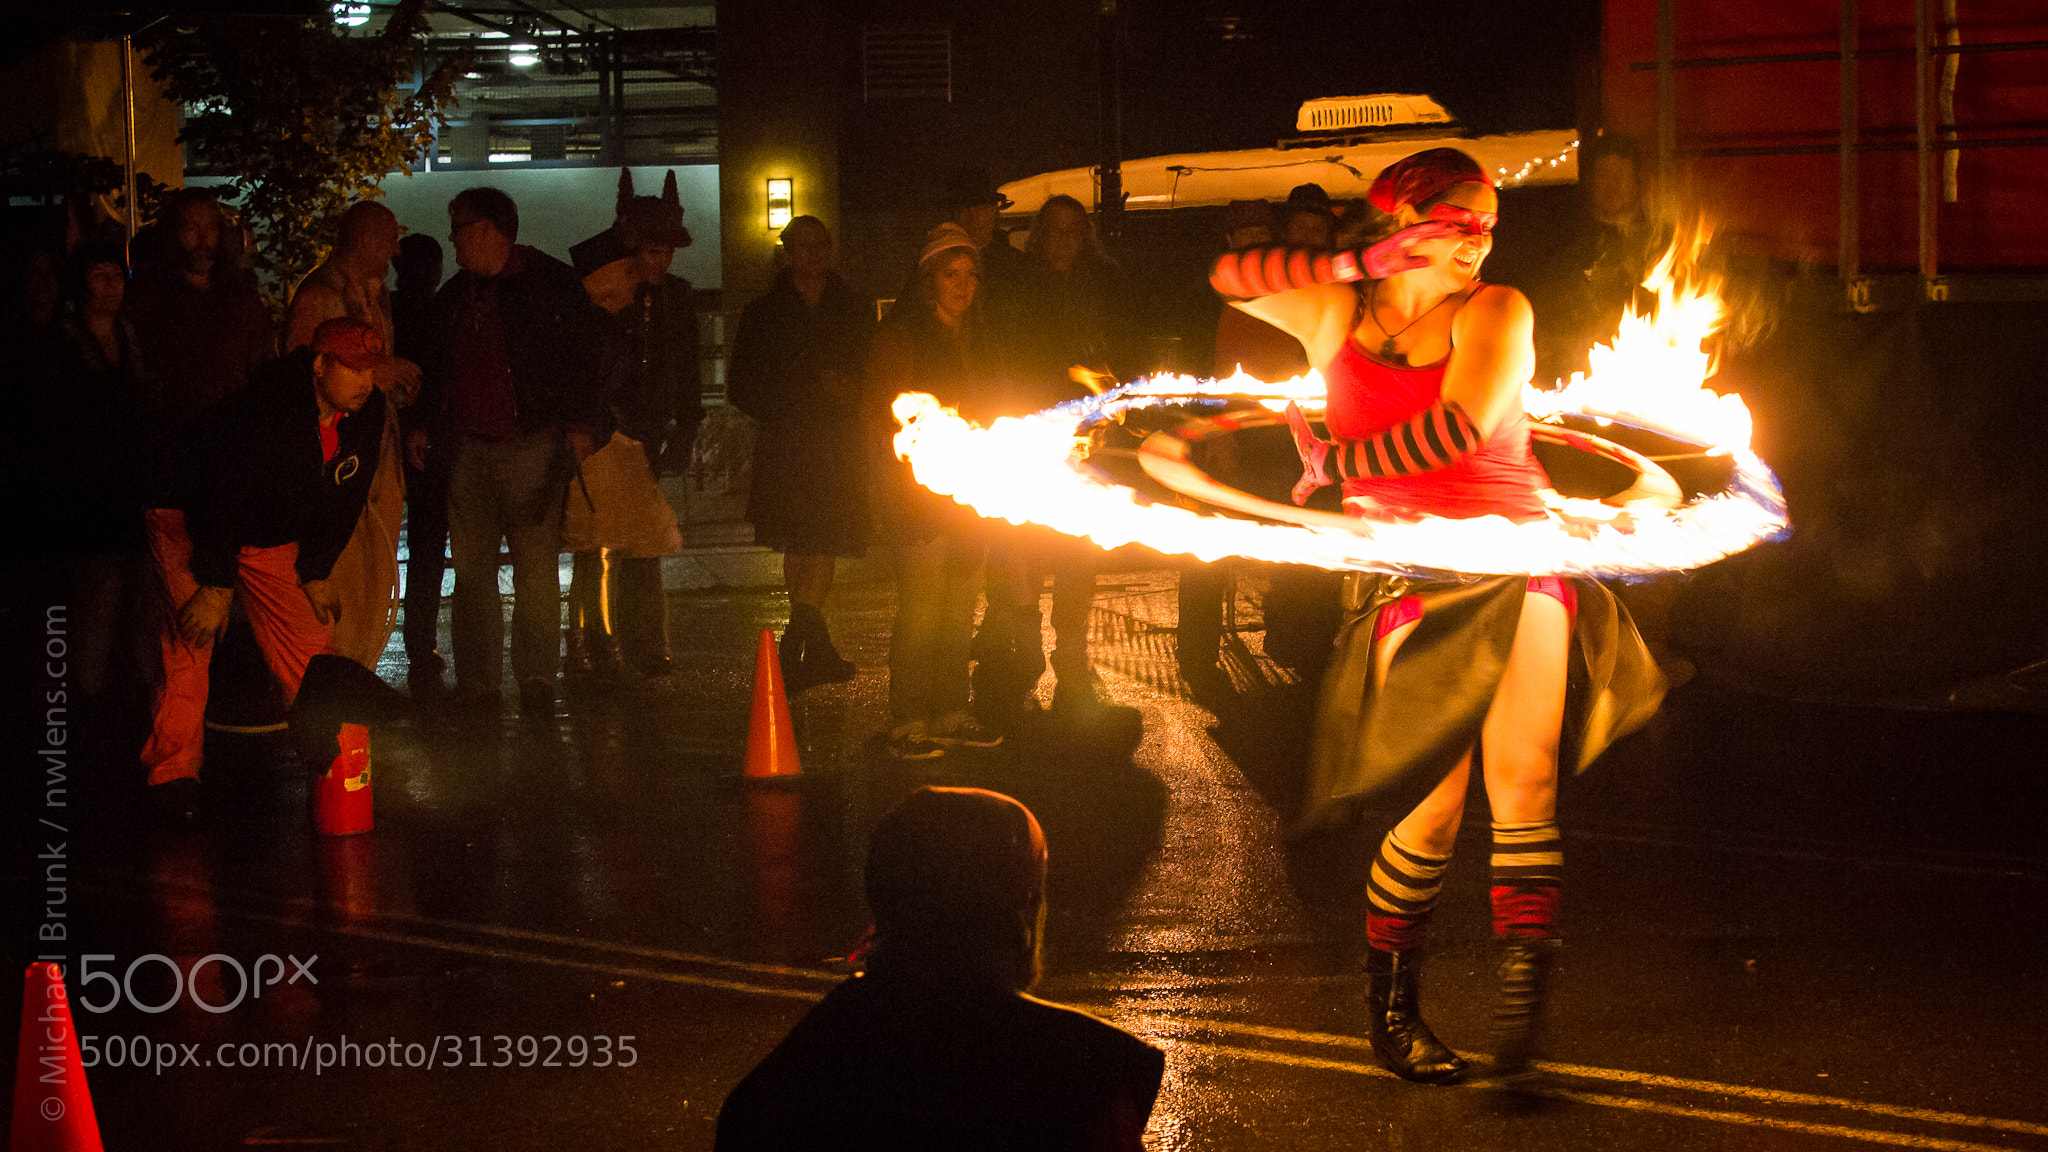 Photograph Dancing With Fire by Michael Brunk on 500px